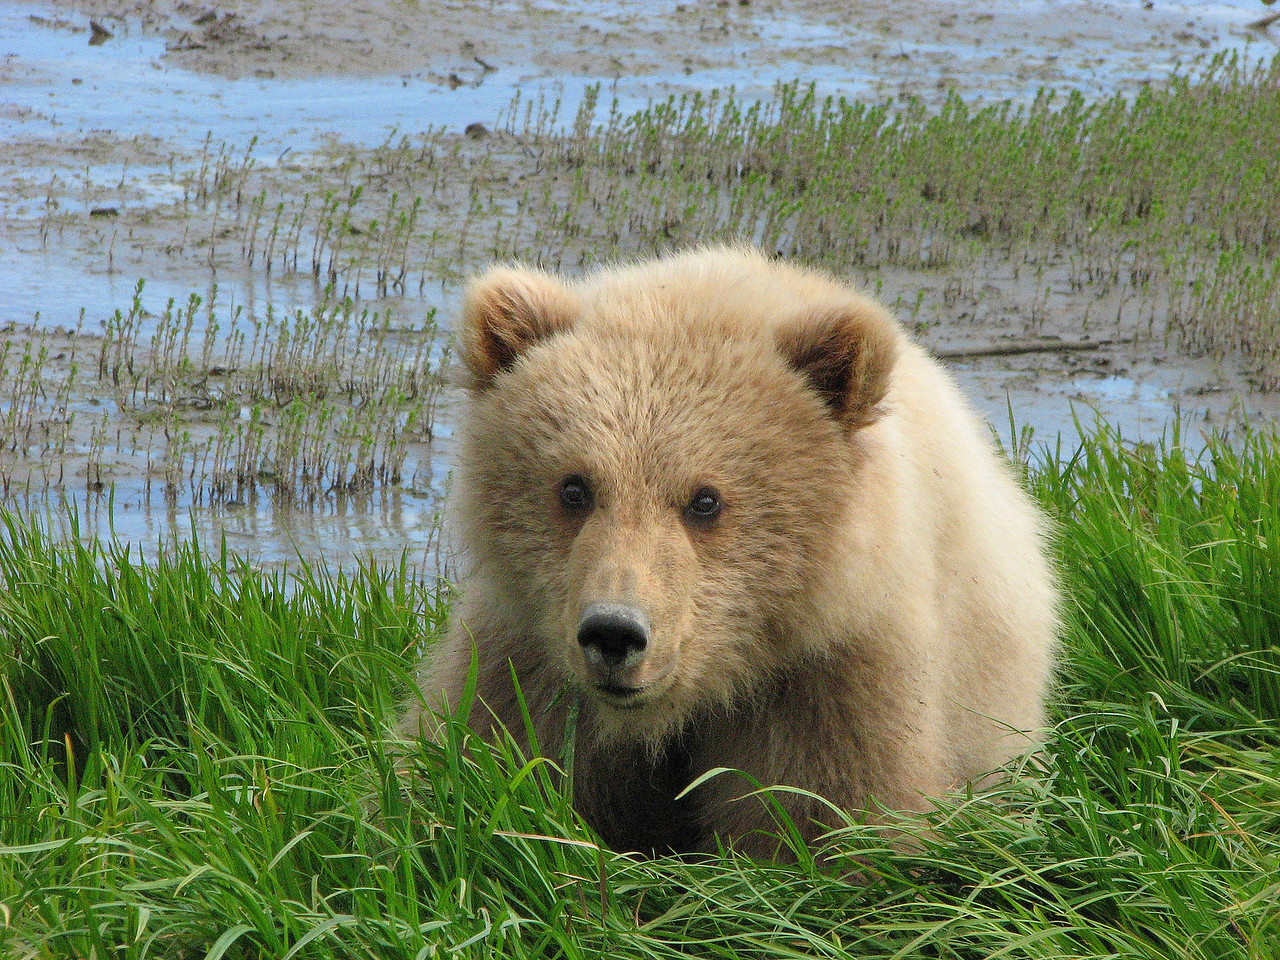 The cub was curious about us, the mom just walked by calmly.